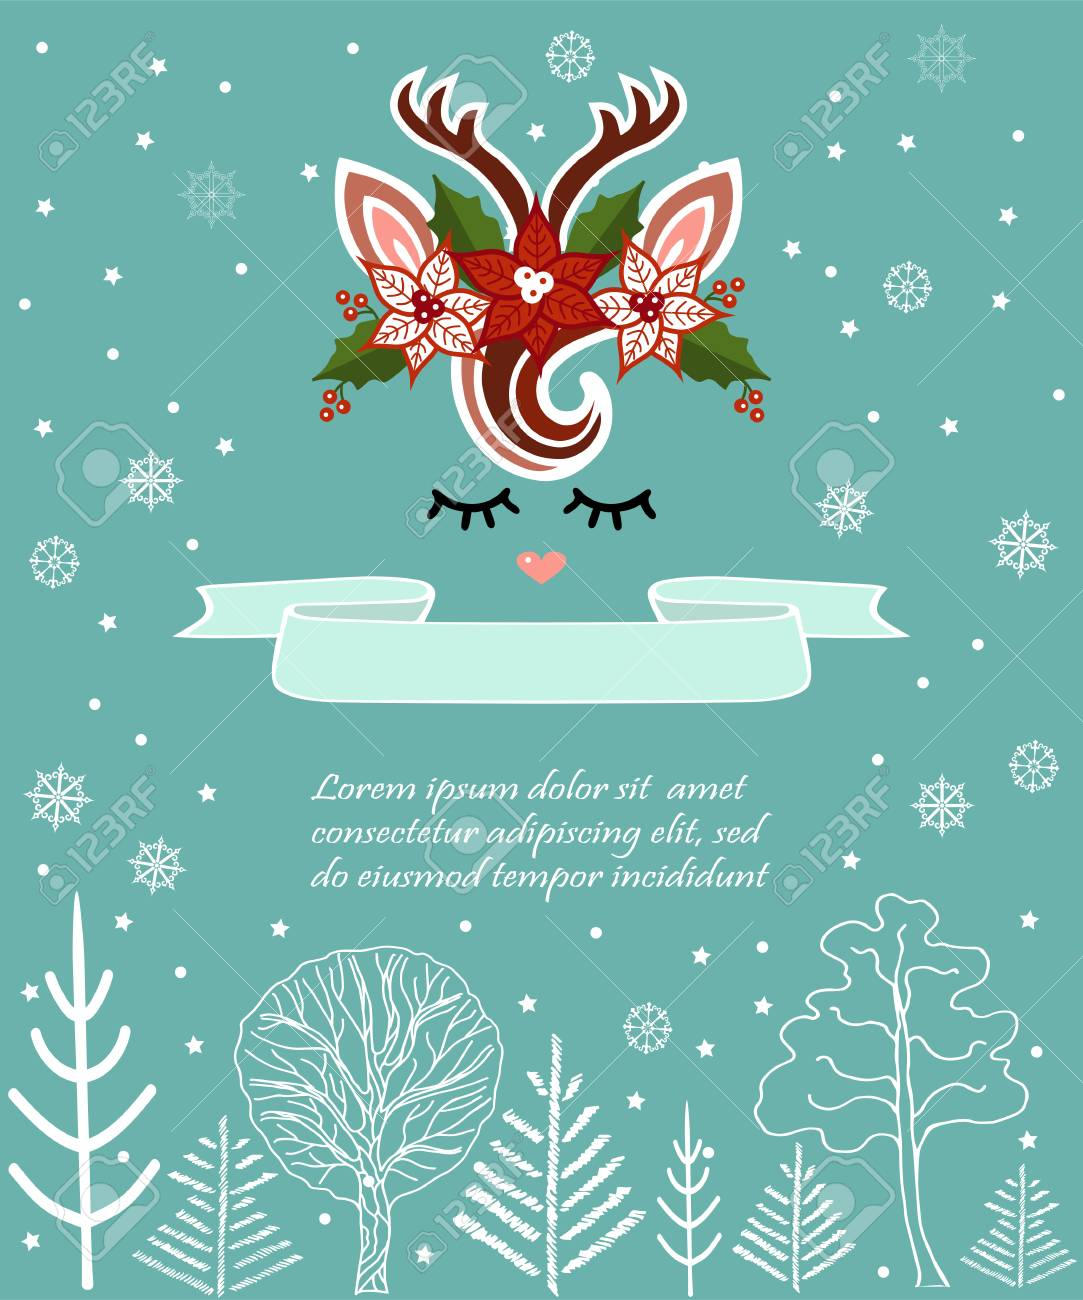 Vector Illustration With Cute Deer Template For Merry Christmas